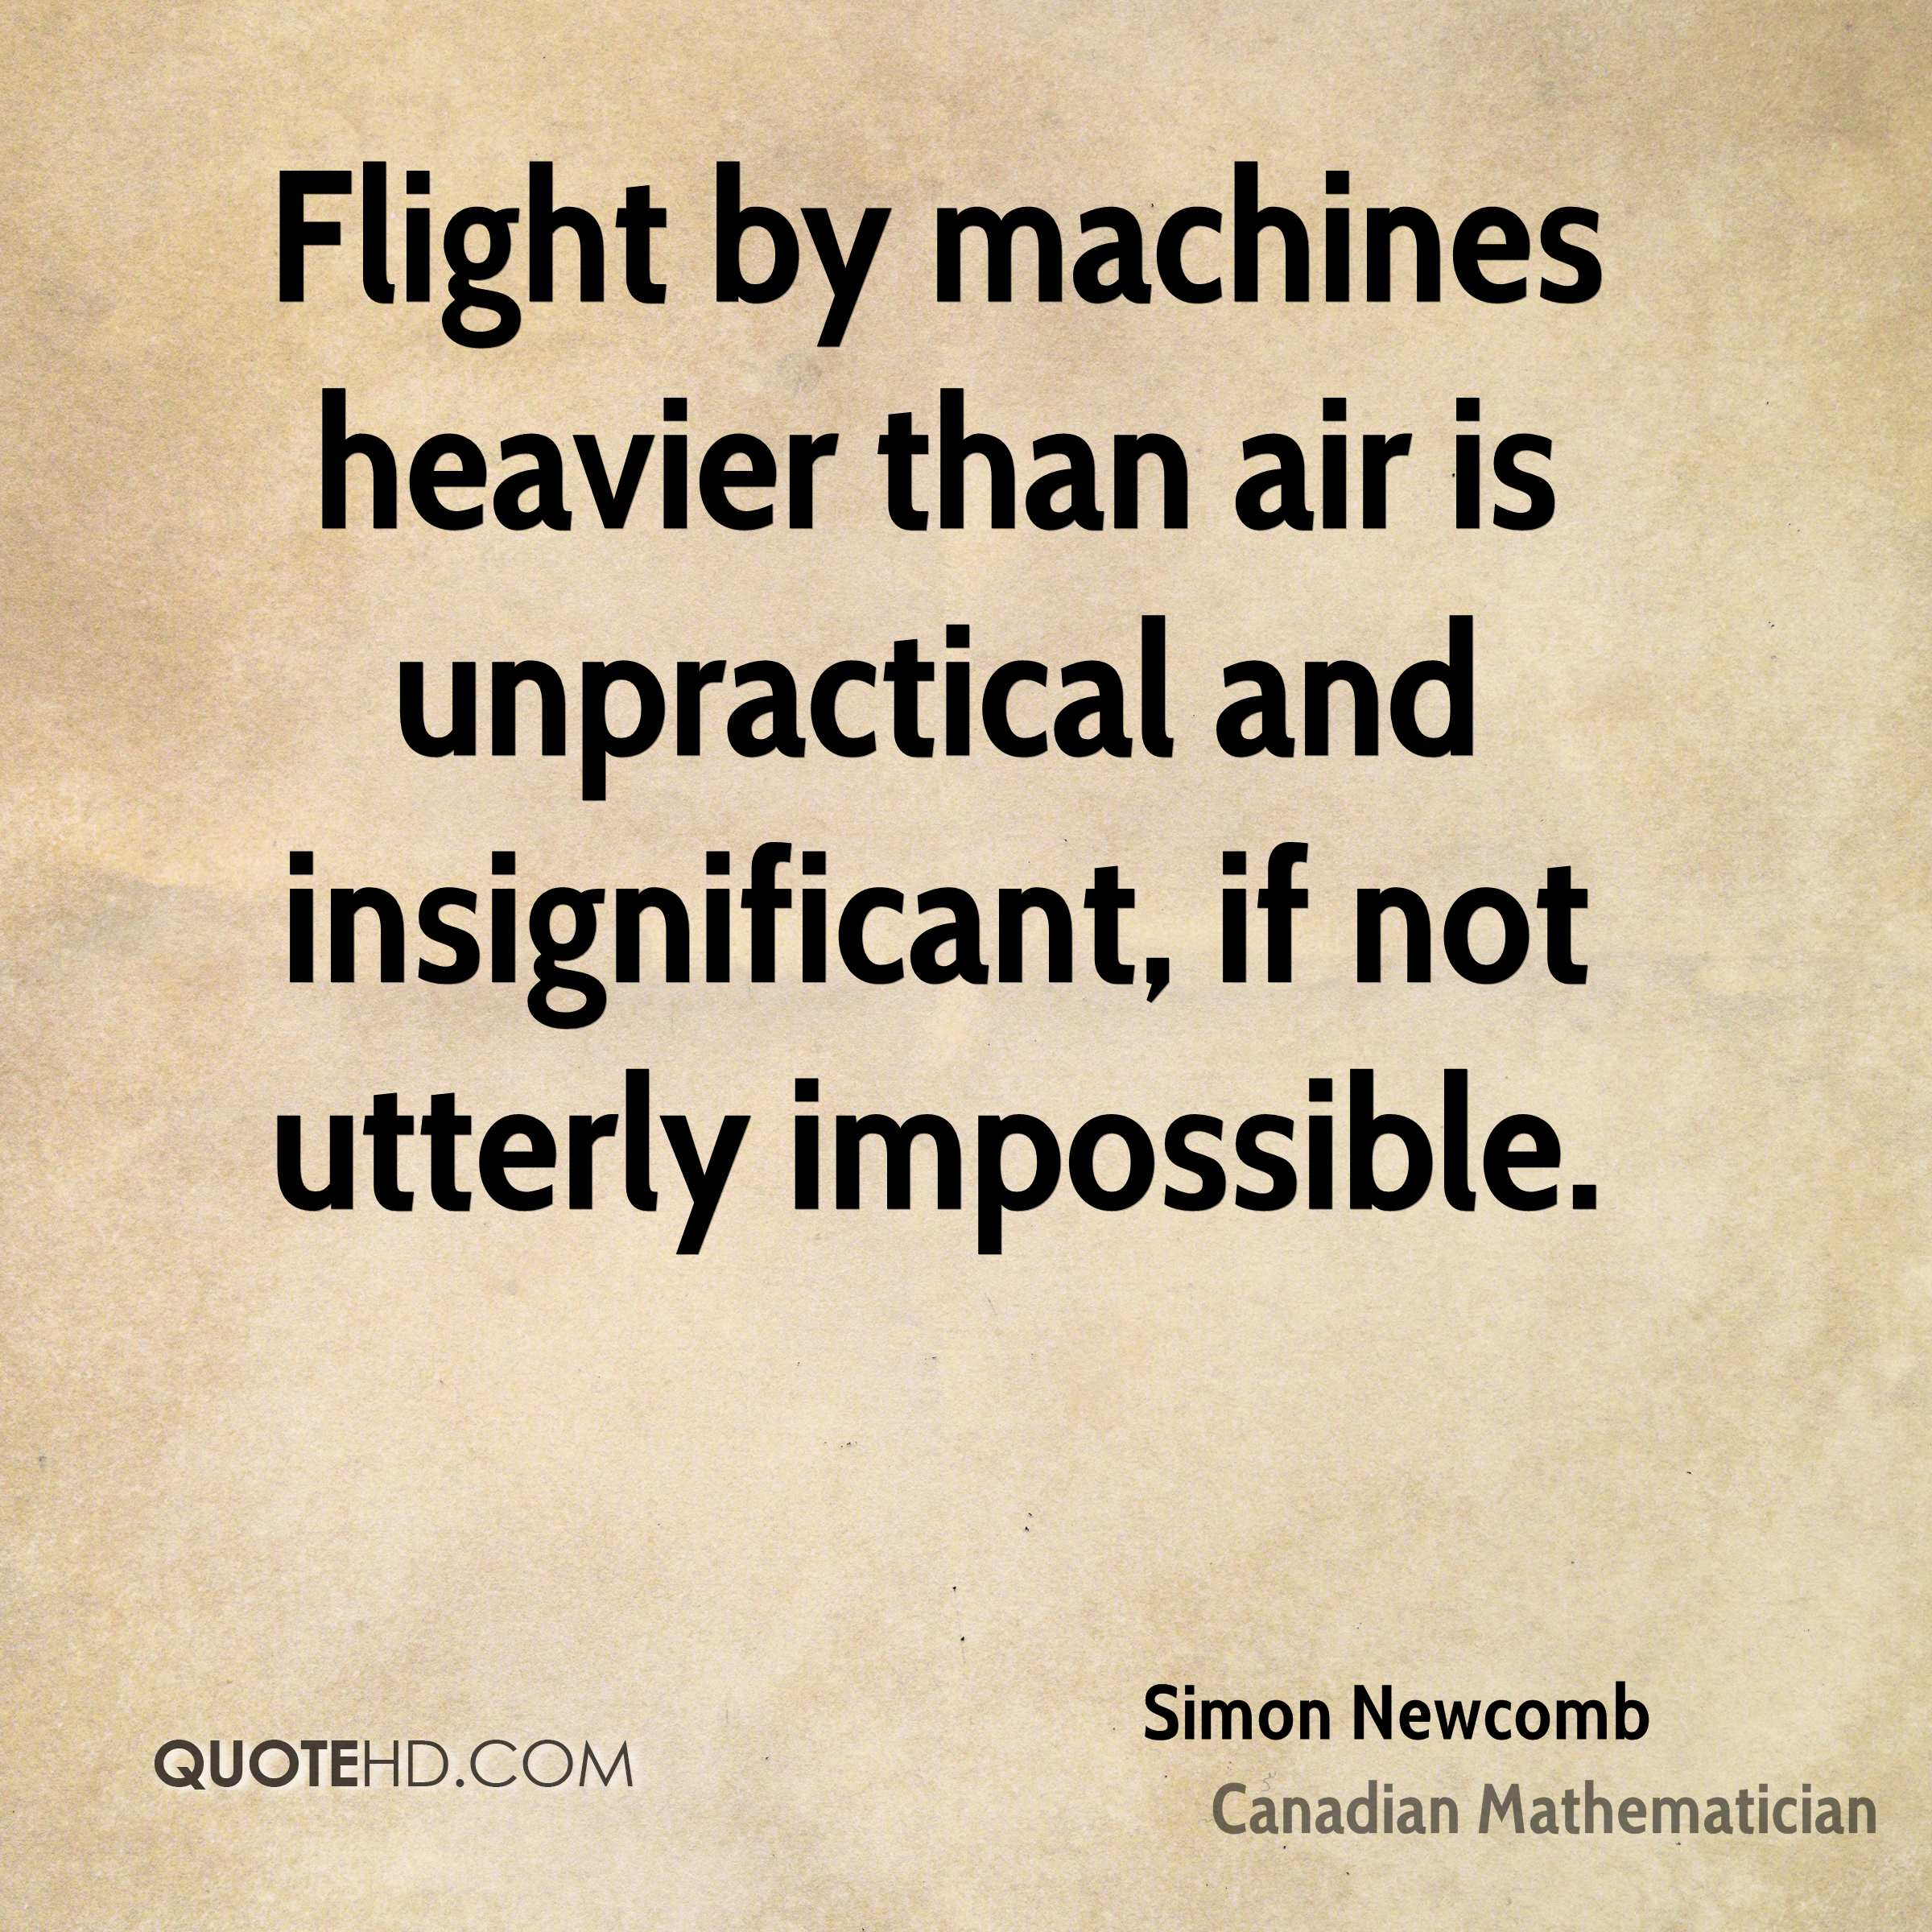 Flight by machines heavier than air is unpractical and insignificant, if not utterly impossible.